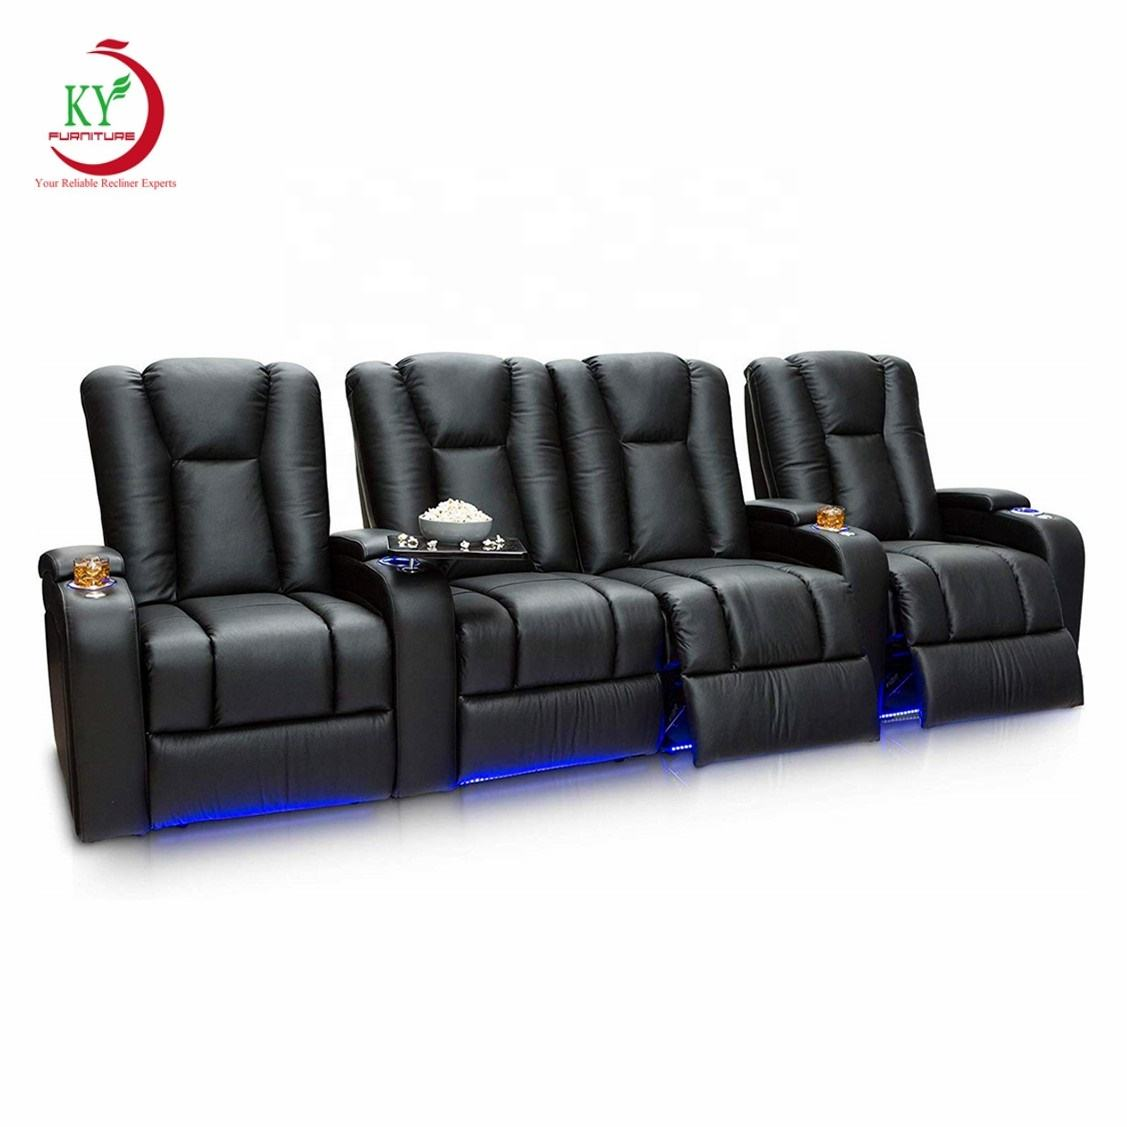 JKY Furniture Living Room Cinema Home Theater Recliner Seats New Style Sofa Set